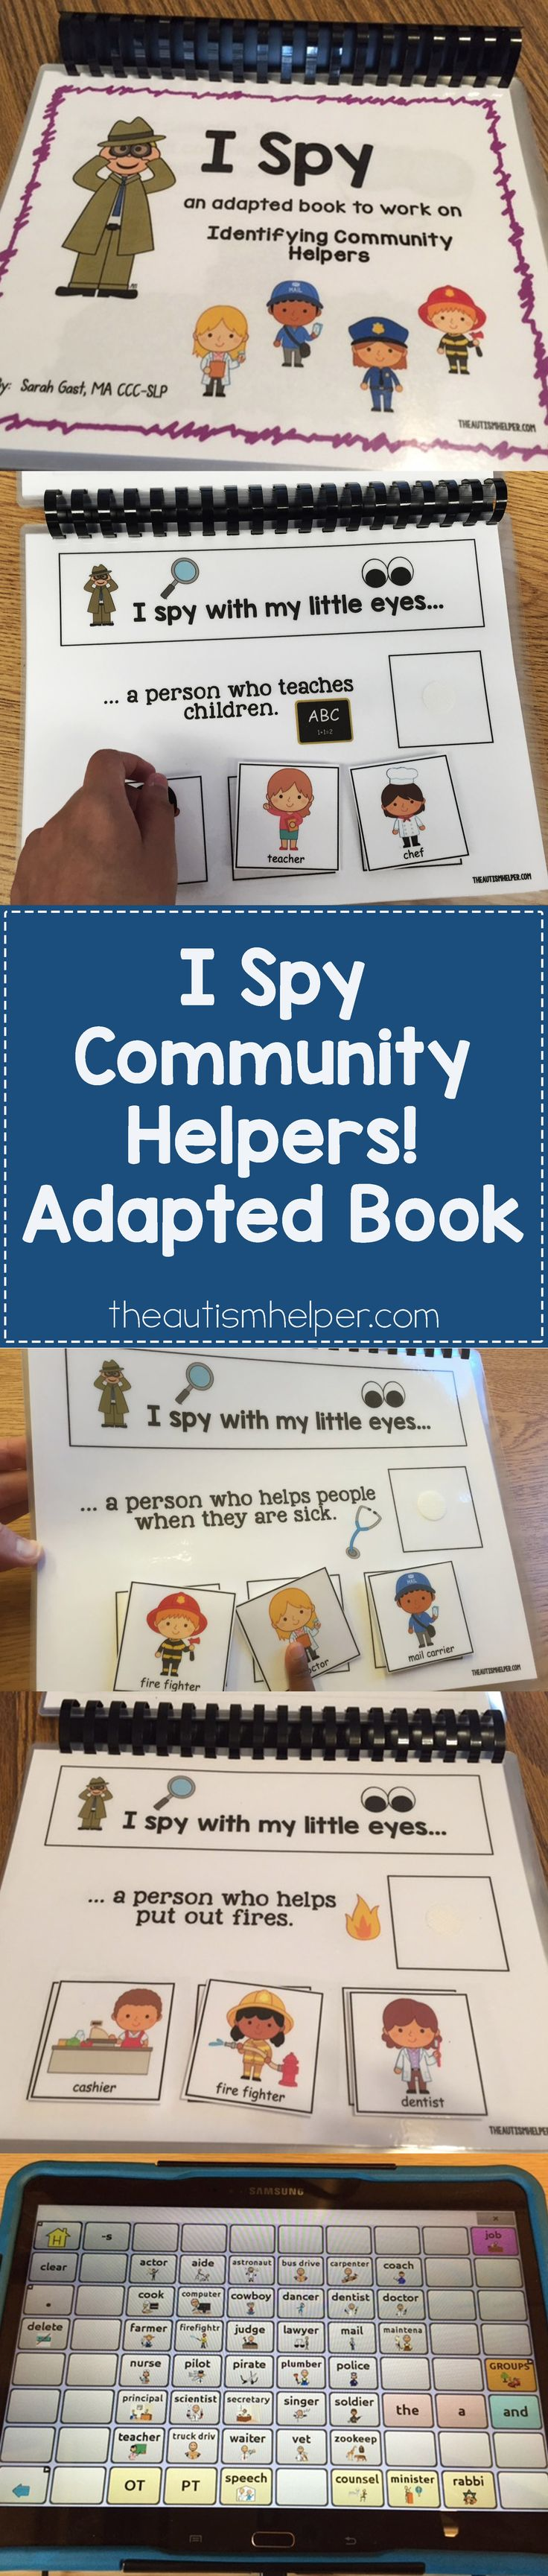 """I Spy Community Helpers"" adapted book helps target answering  challenging ""who"" questions with repetition, vocab terms, & learning names of community members along with what the person does. More details on the blog! From theautismhelper.com #theautismhelper"